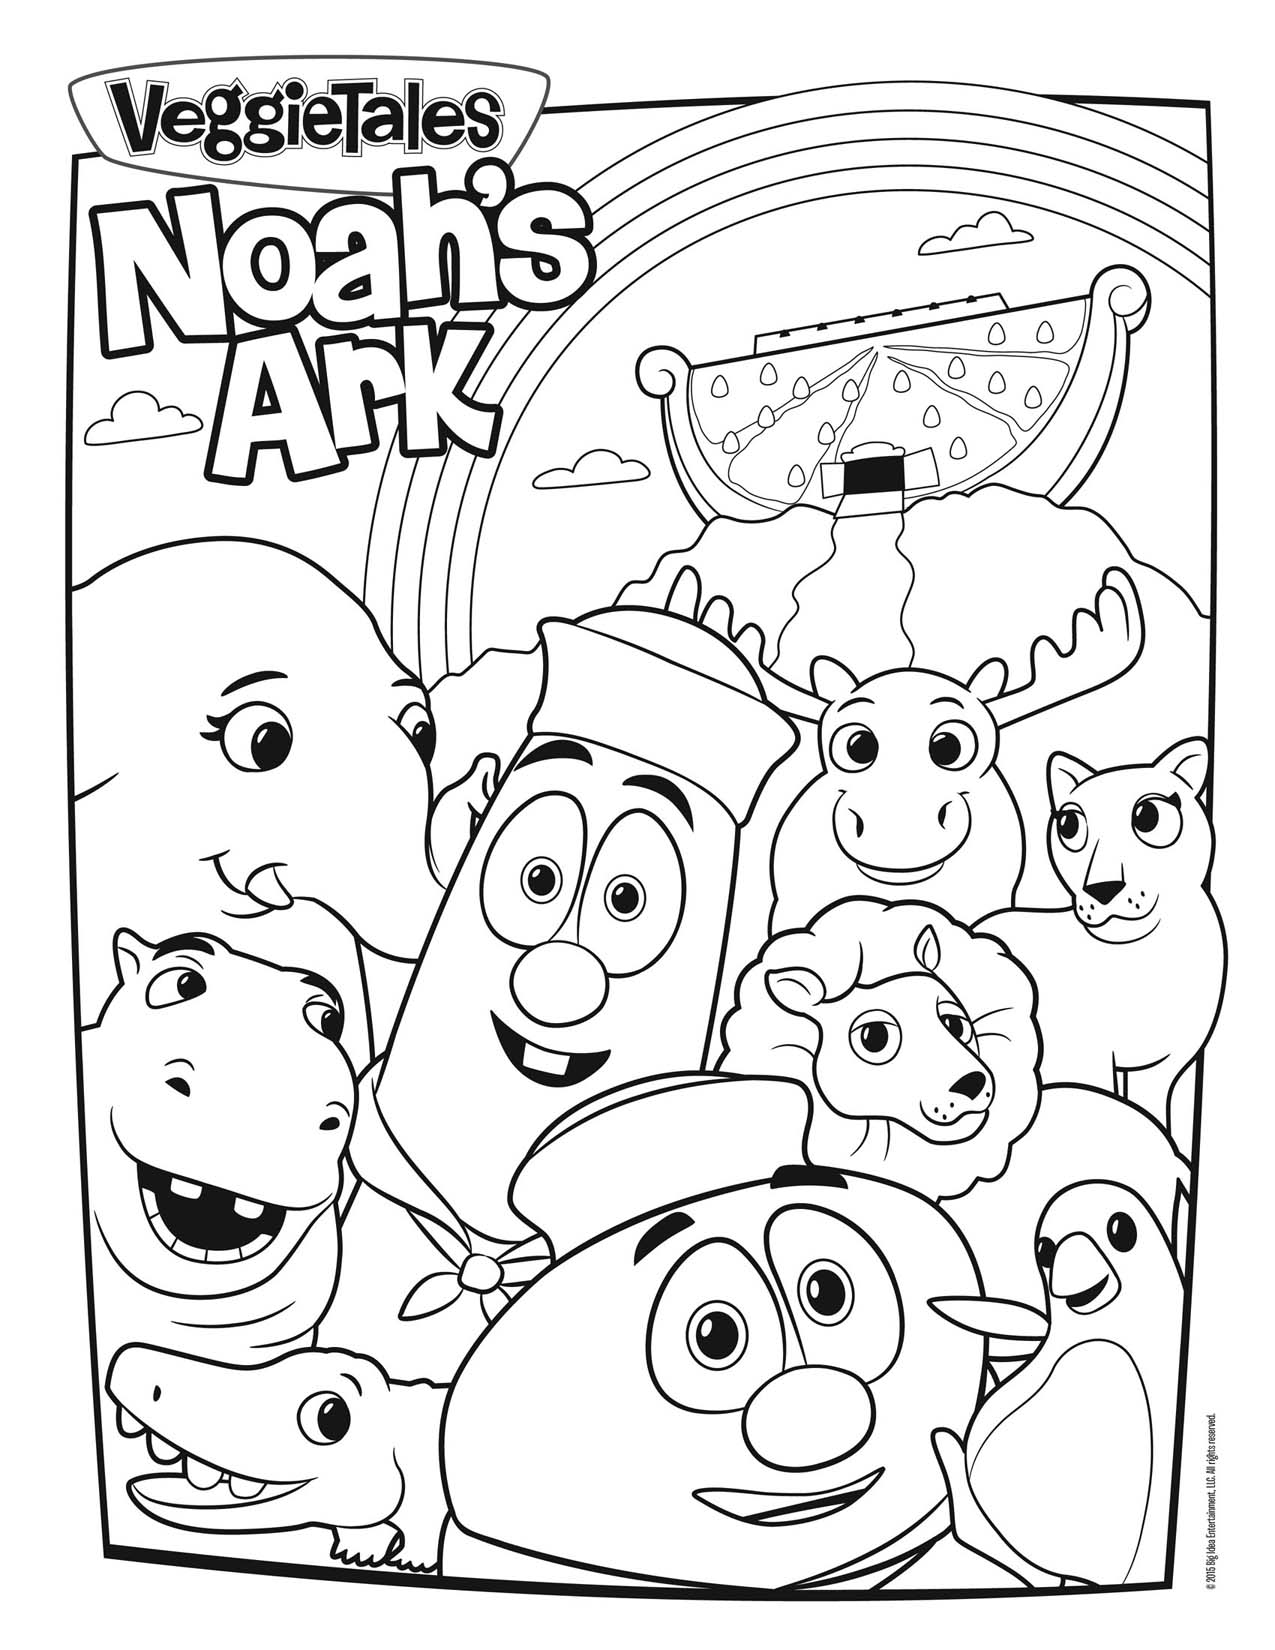 1275x1650 Veggietales Noah's Ark Coloring Page Just For Kids